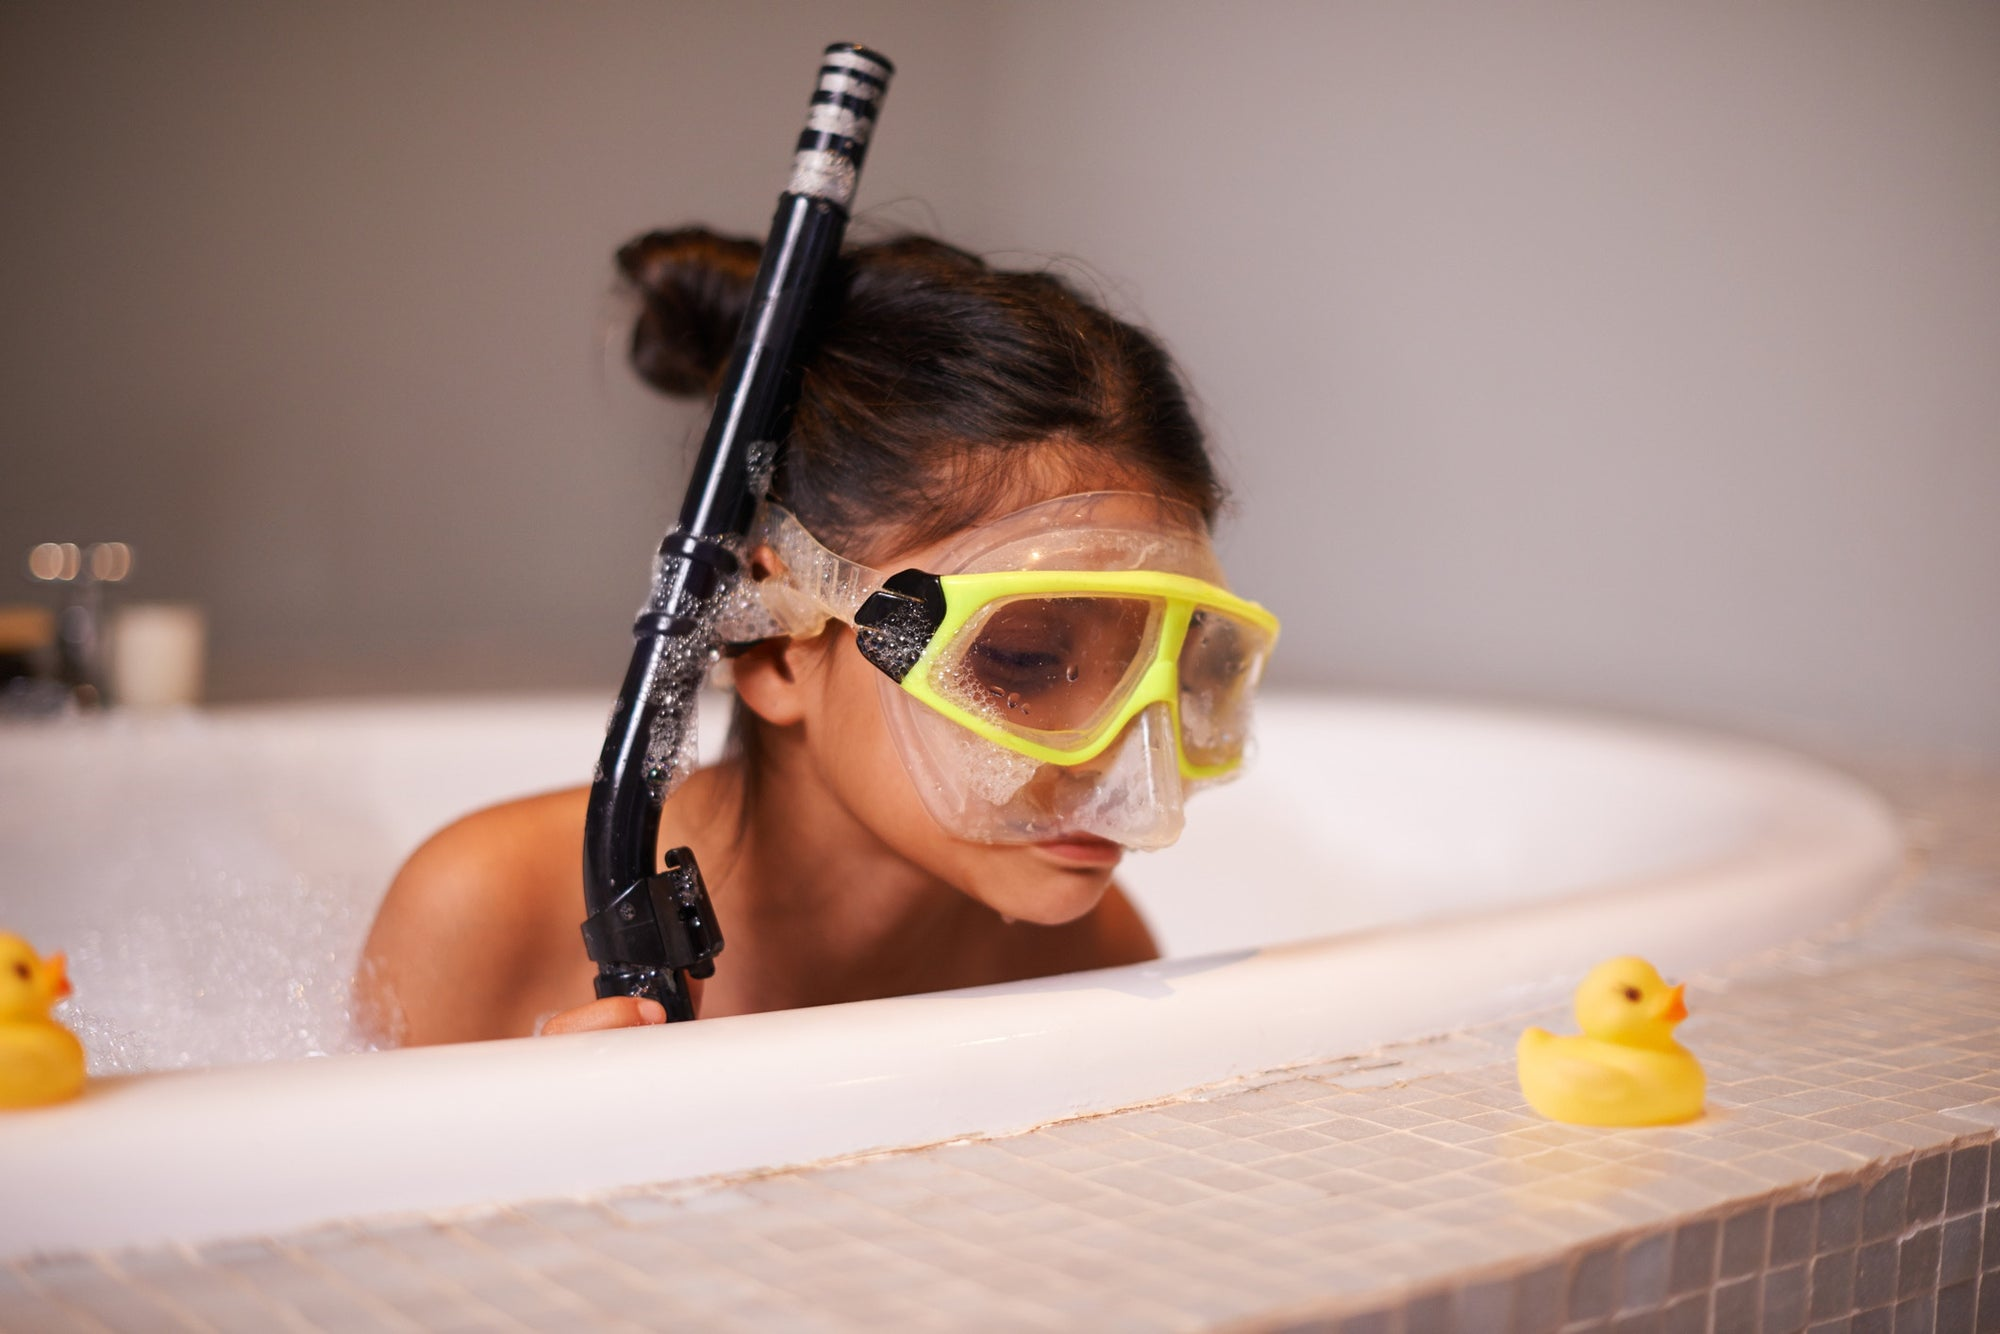 kid on a tub with breathing tube and swim googles